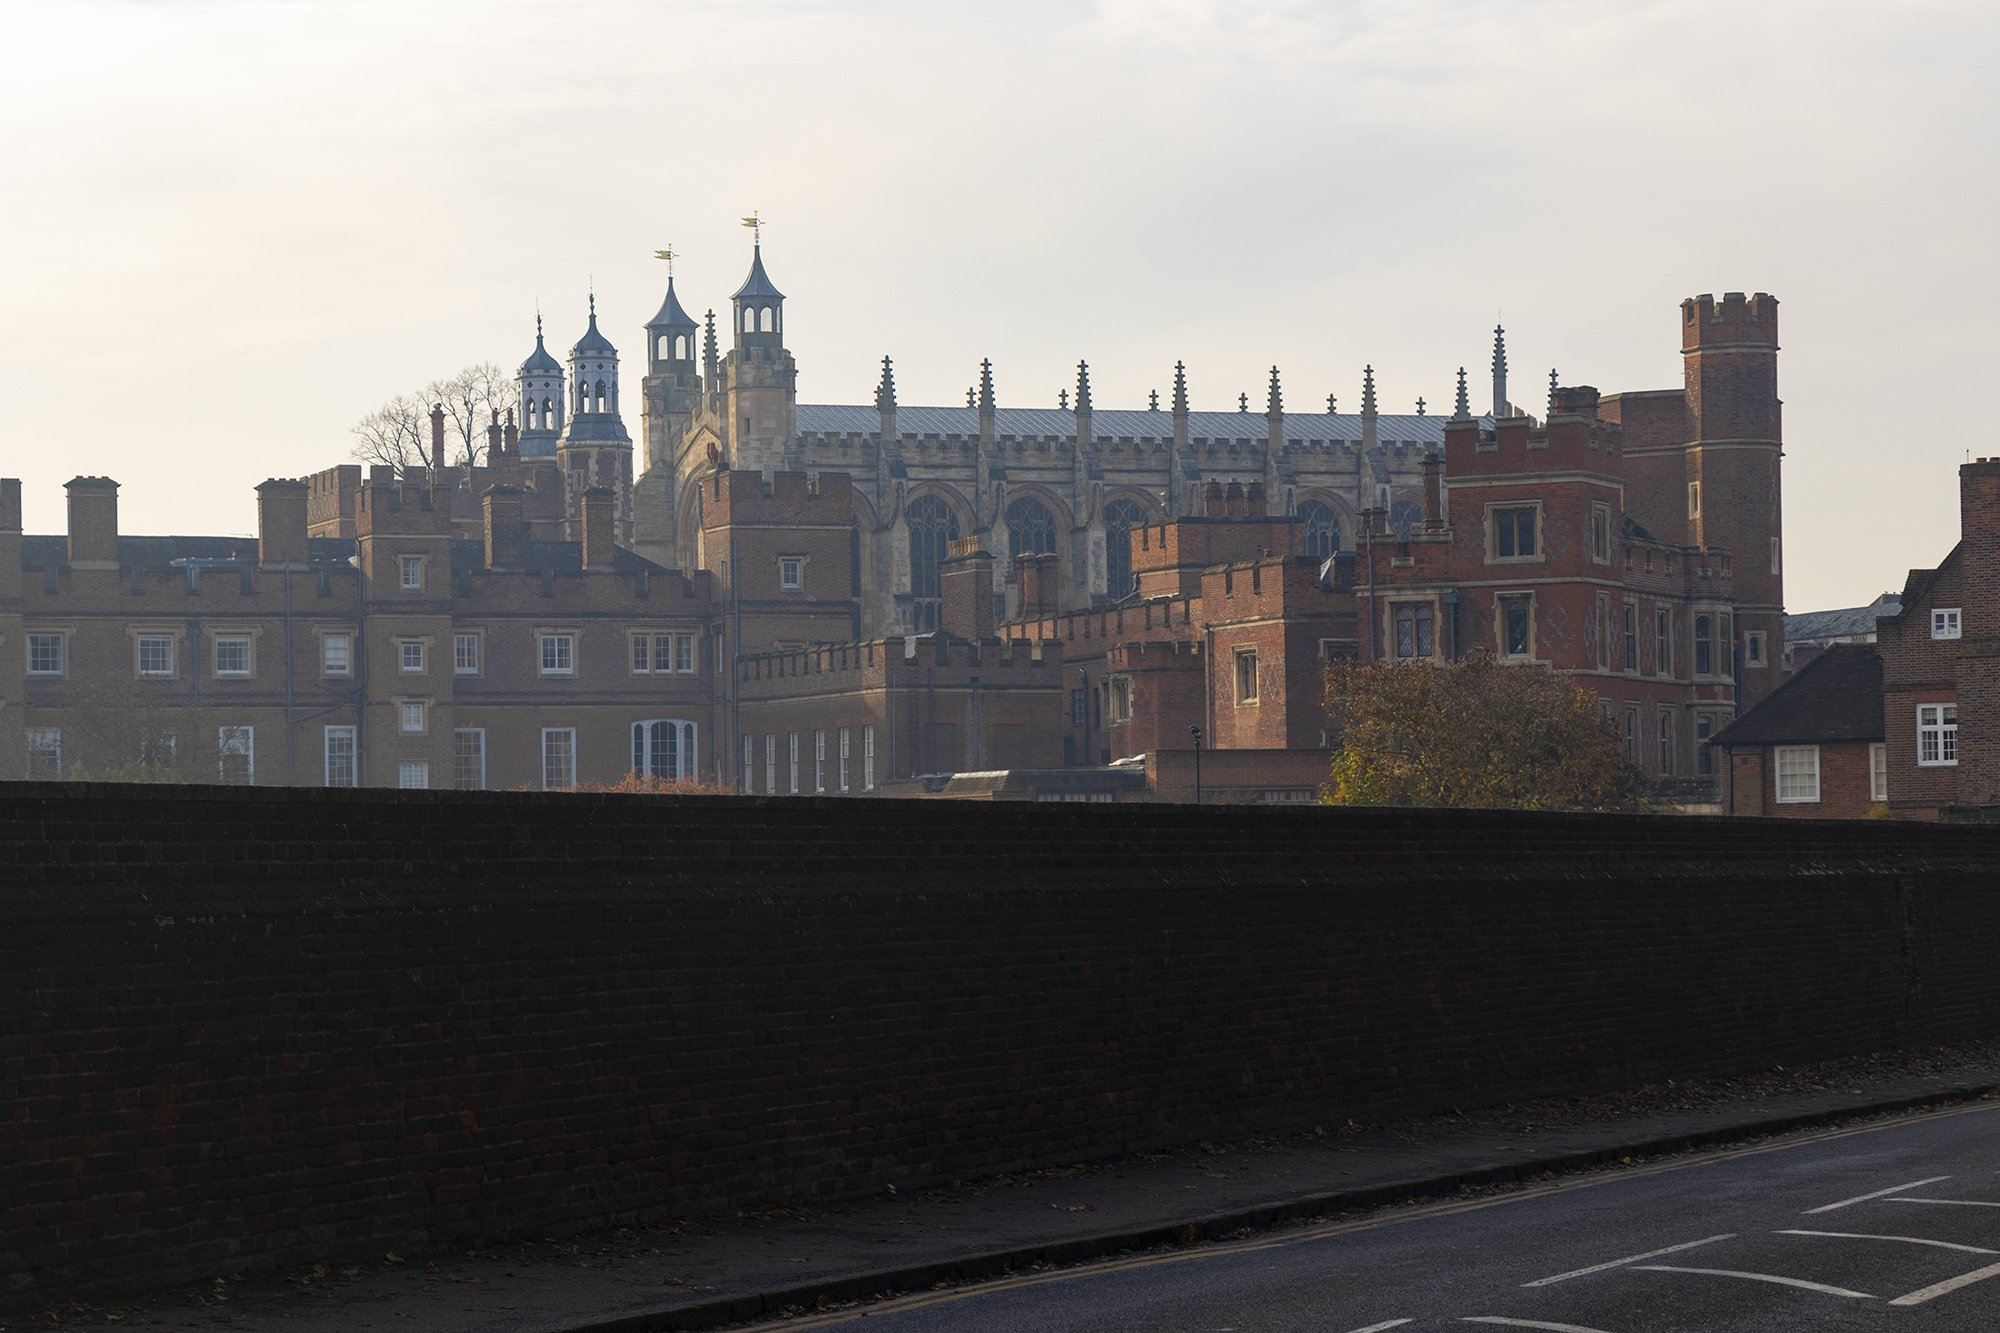 Eton College and Eton College Chapel